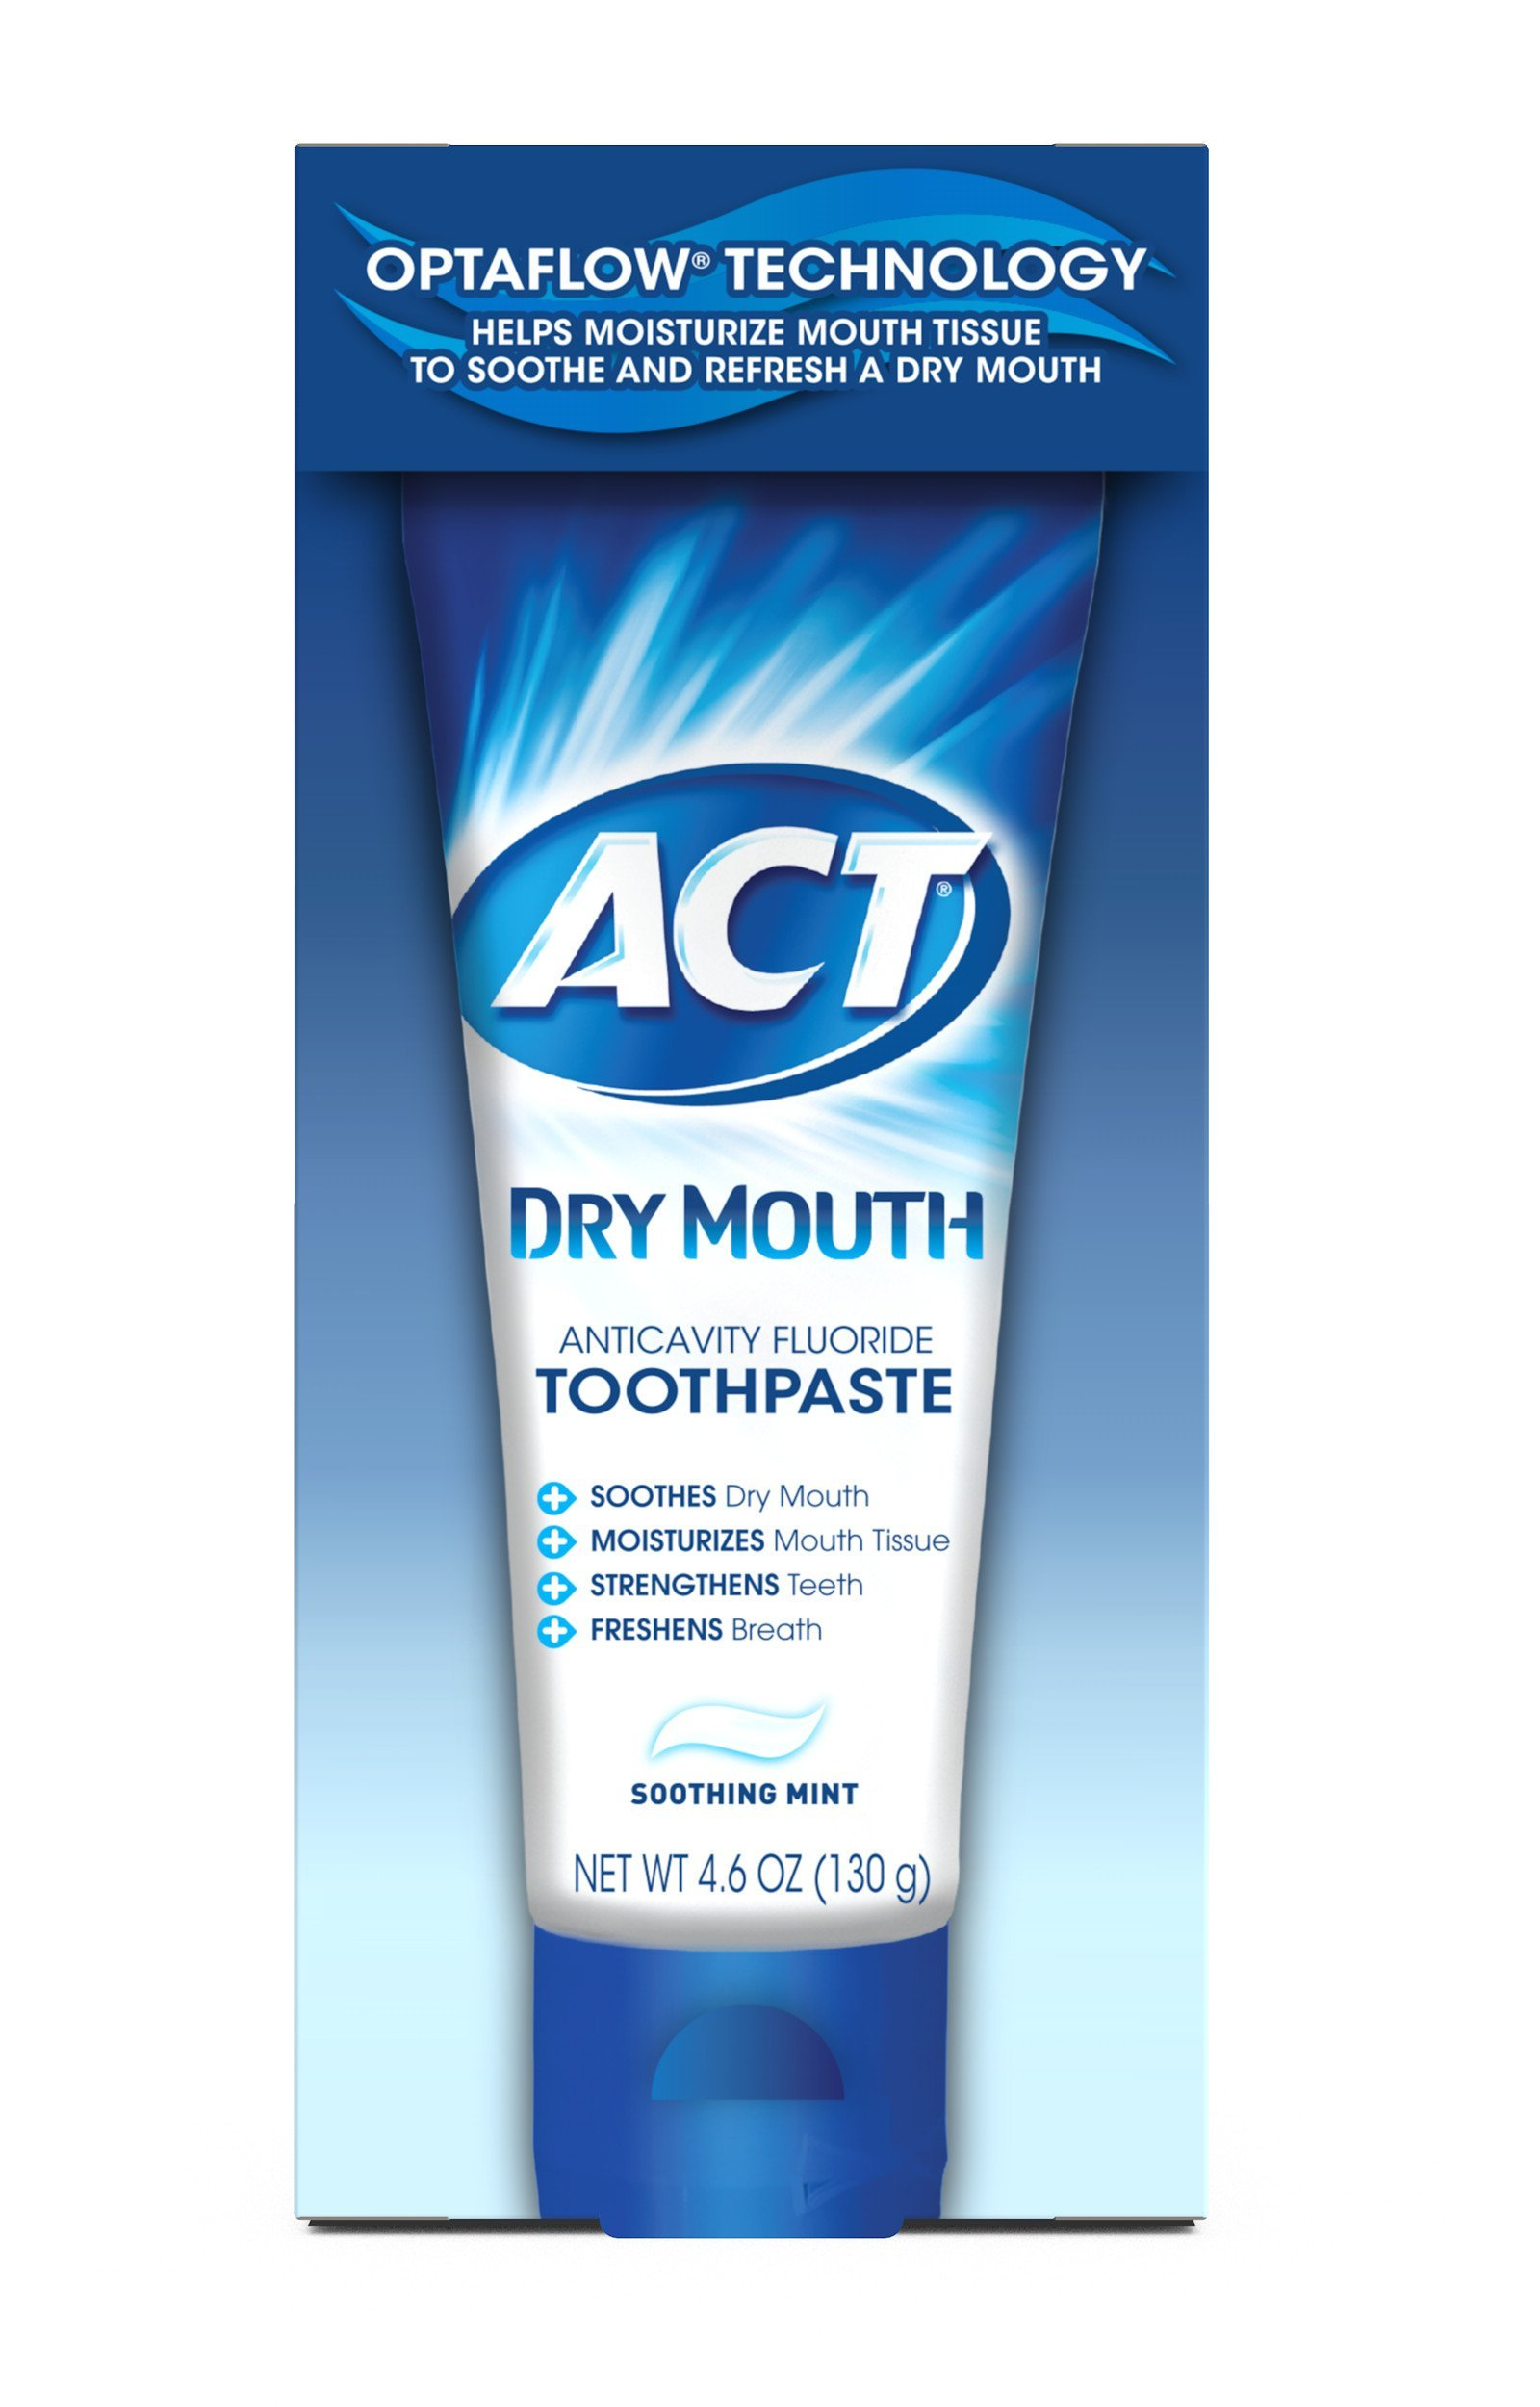 ACT Dry Mouth Anticavity Fluoride Toothpaste, Soothing Mint, 4.6 Ounce